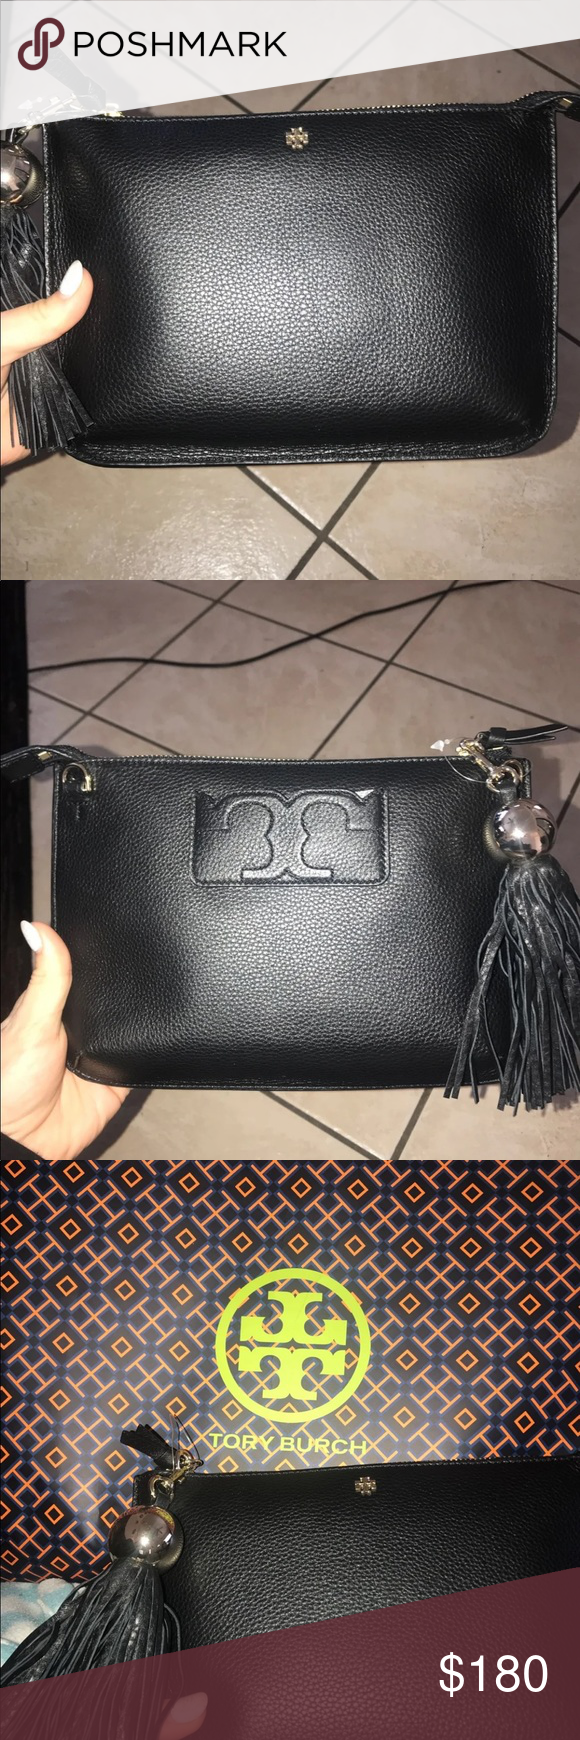 """Tory Burch Black crossbody Brand new with tags Black Tory Burch crossbody  bag Comes with tassel 9.5""""L x 1.75""""W x 7""""H Tory Burch Bags Crossbody Bags b0af16de6d"""